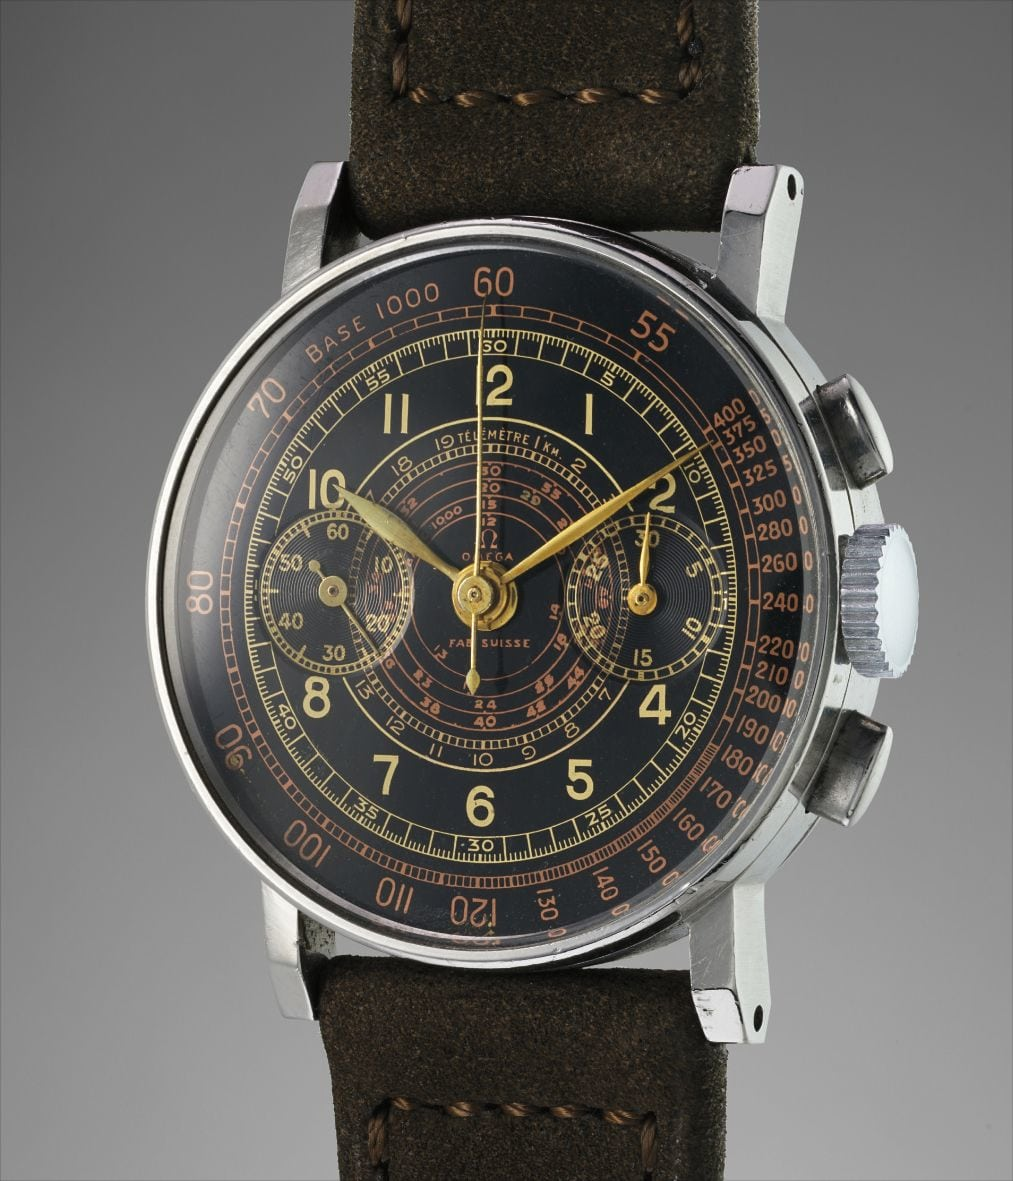 Vintage Omega Chronograph 28.9 CHRO - Image by Phillips Watches